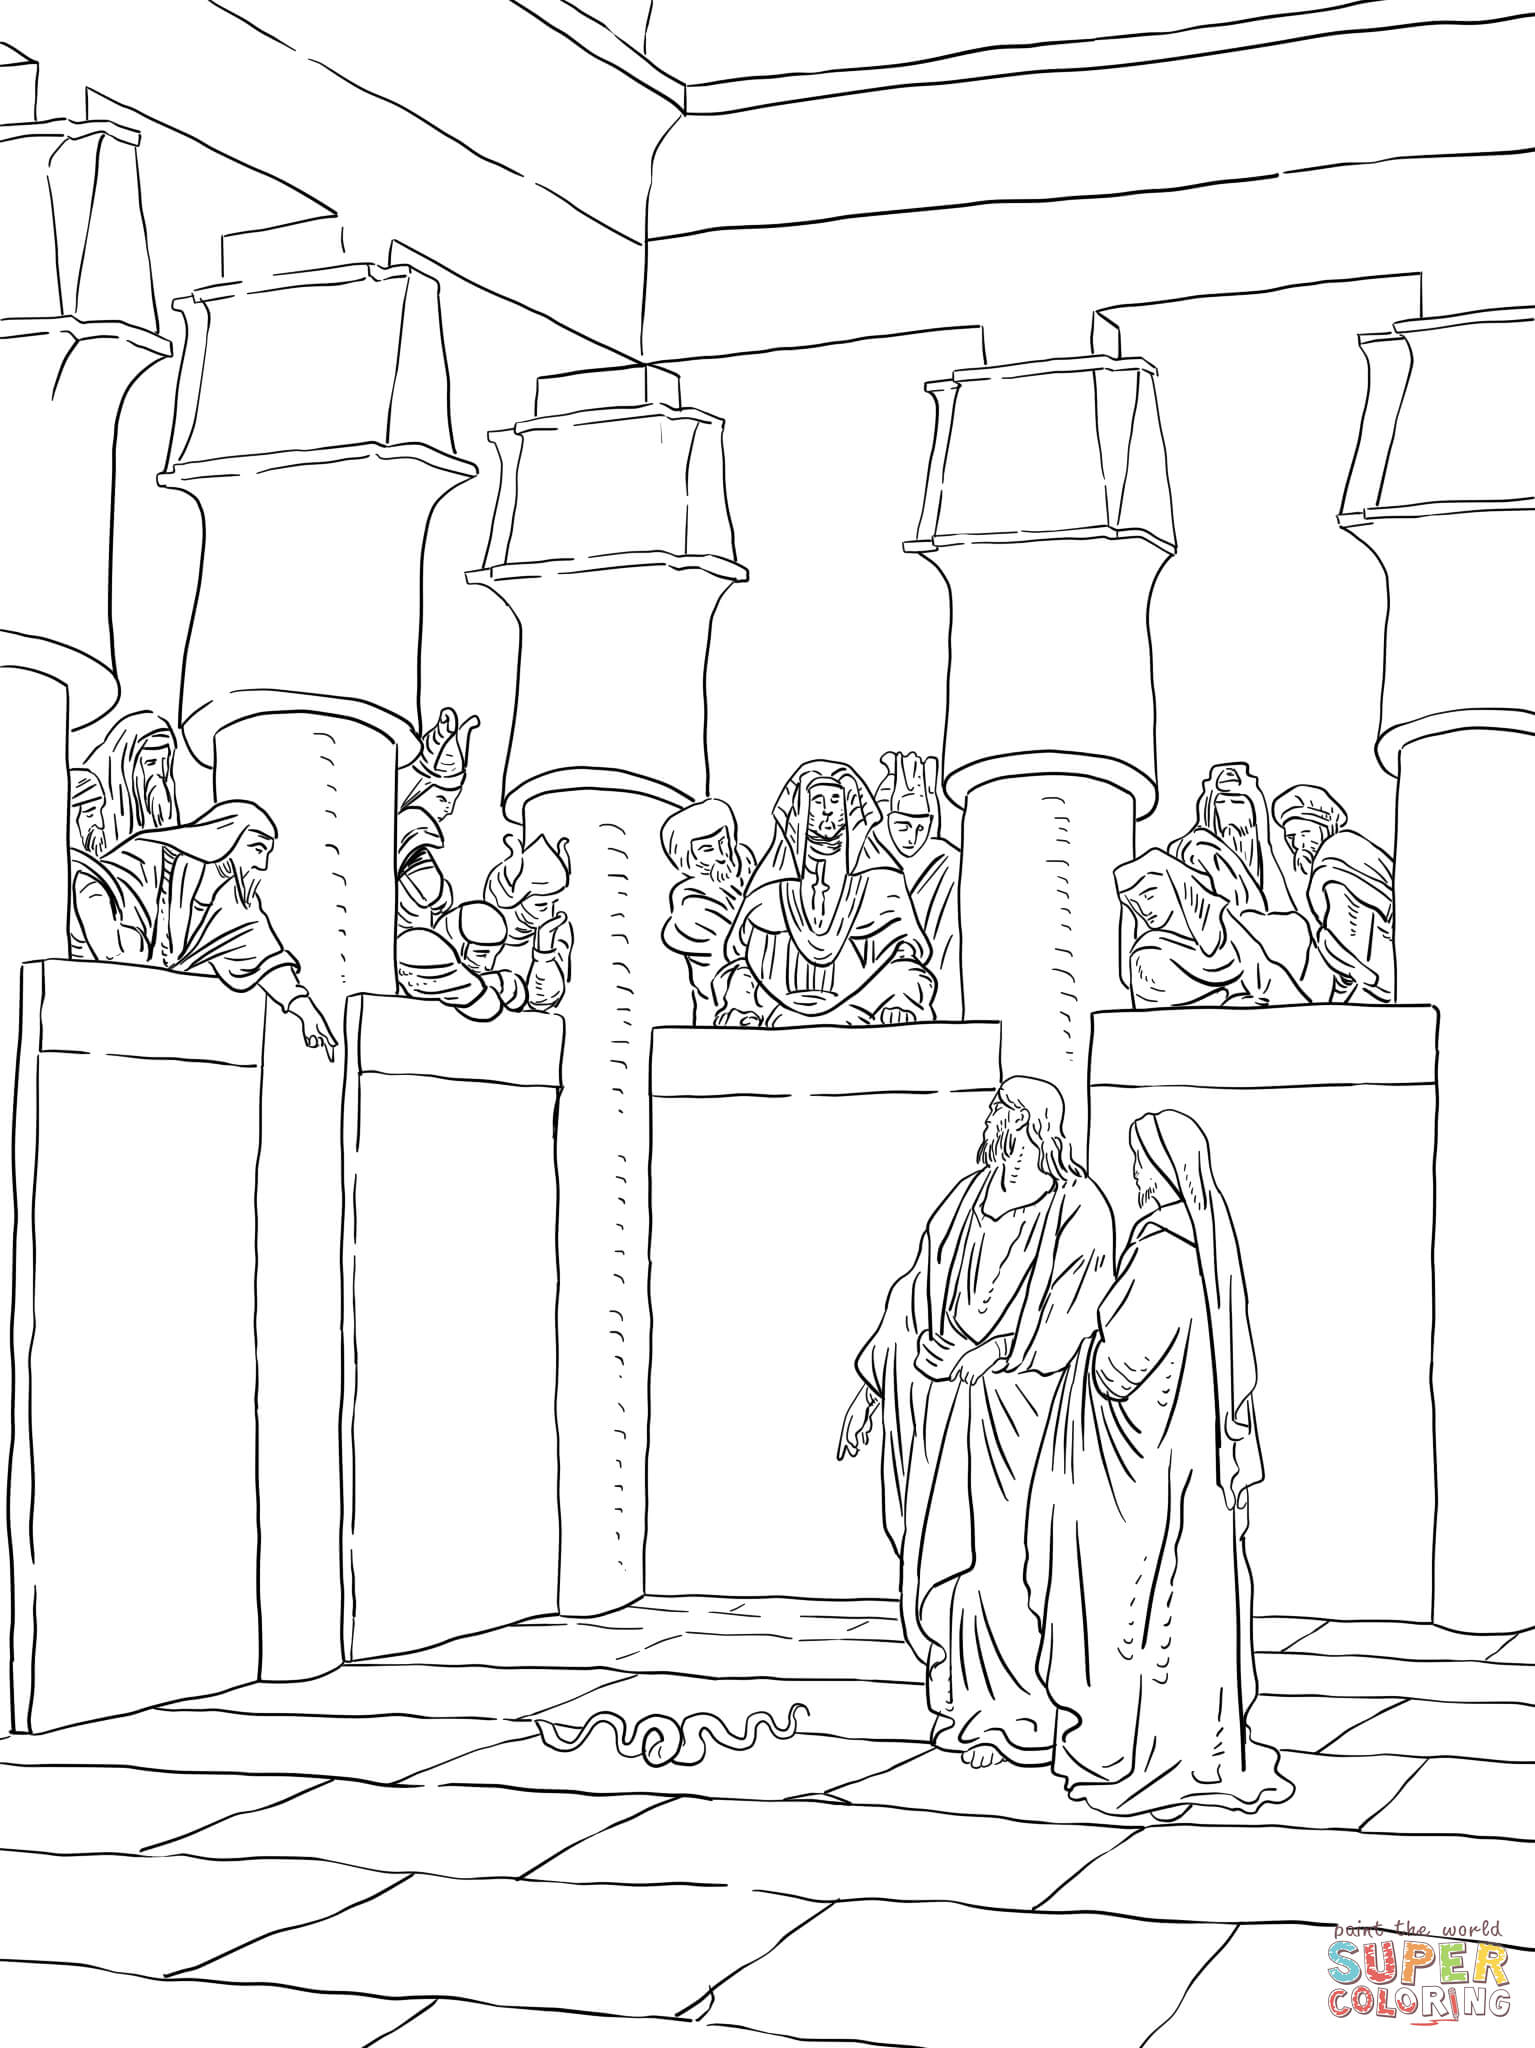 Moses And Aaron Appear Before Pharaoh Coloring Page